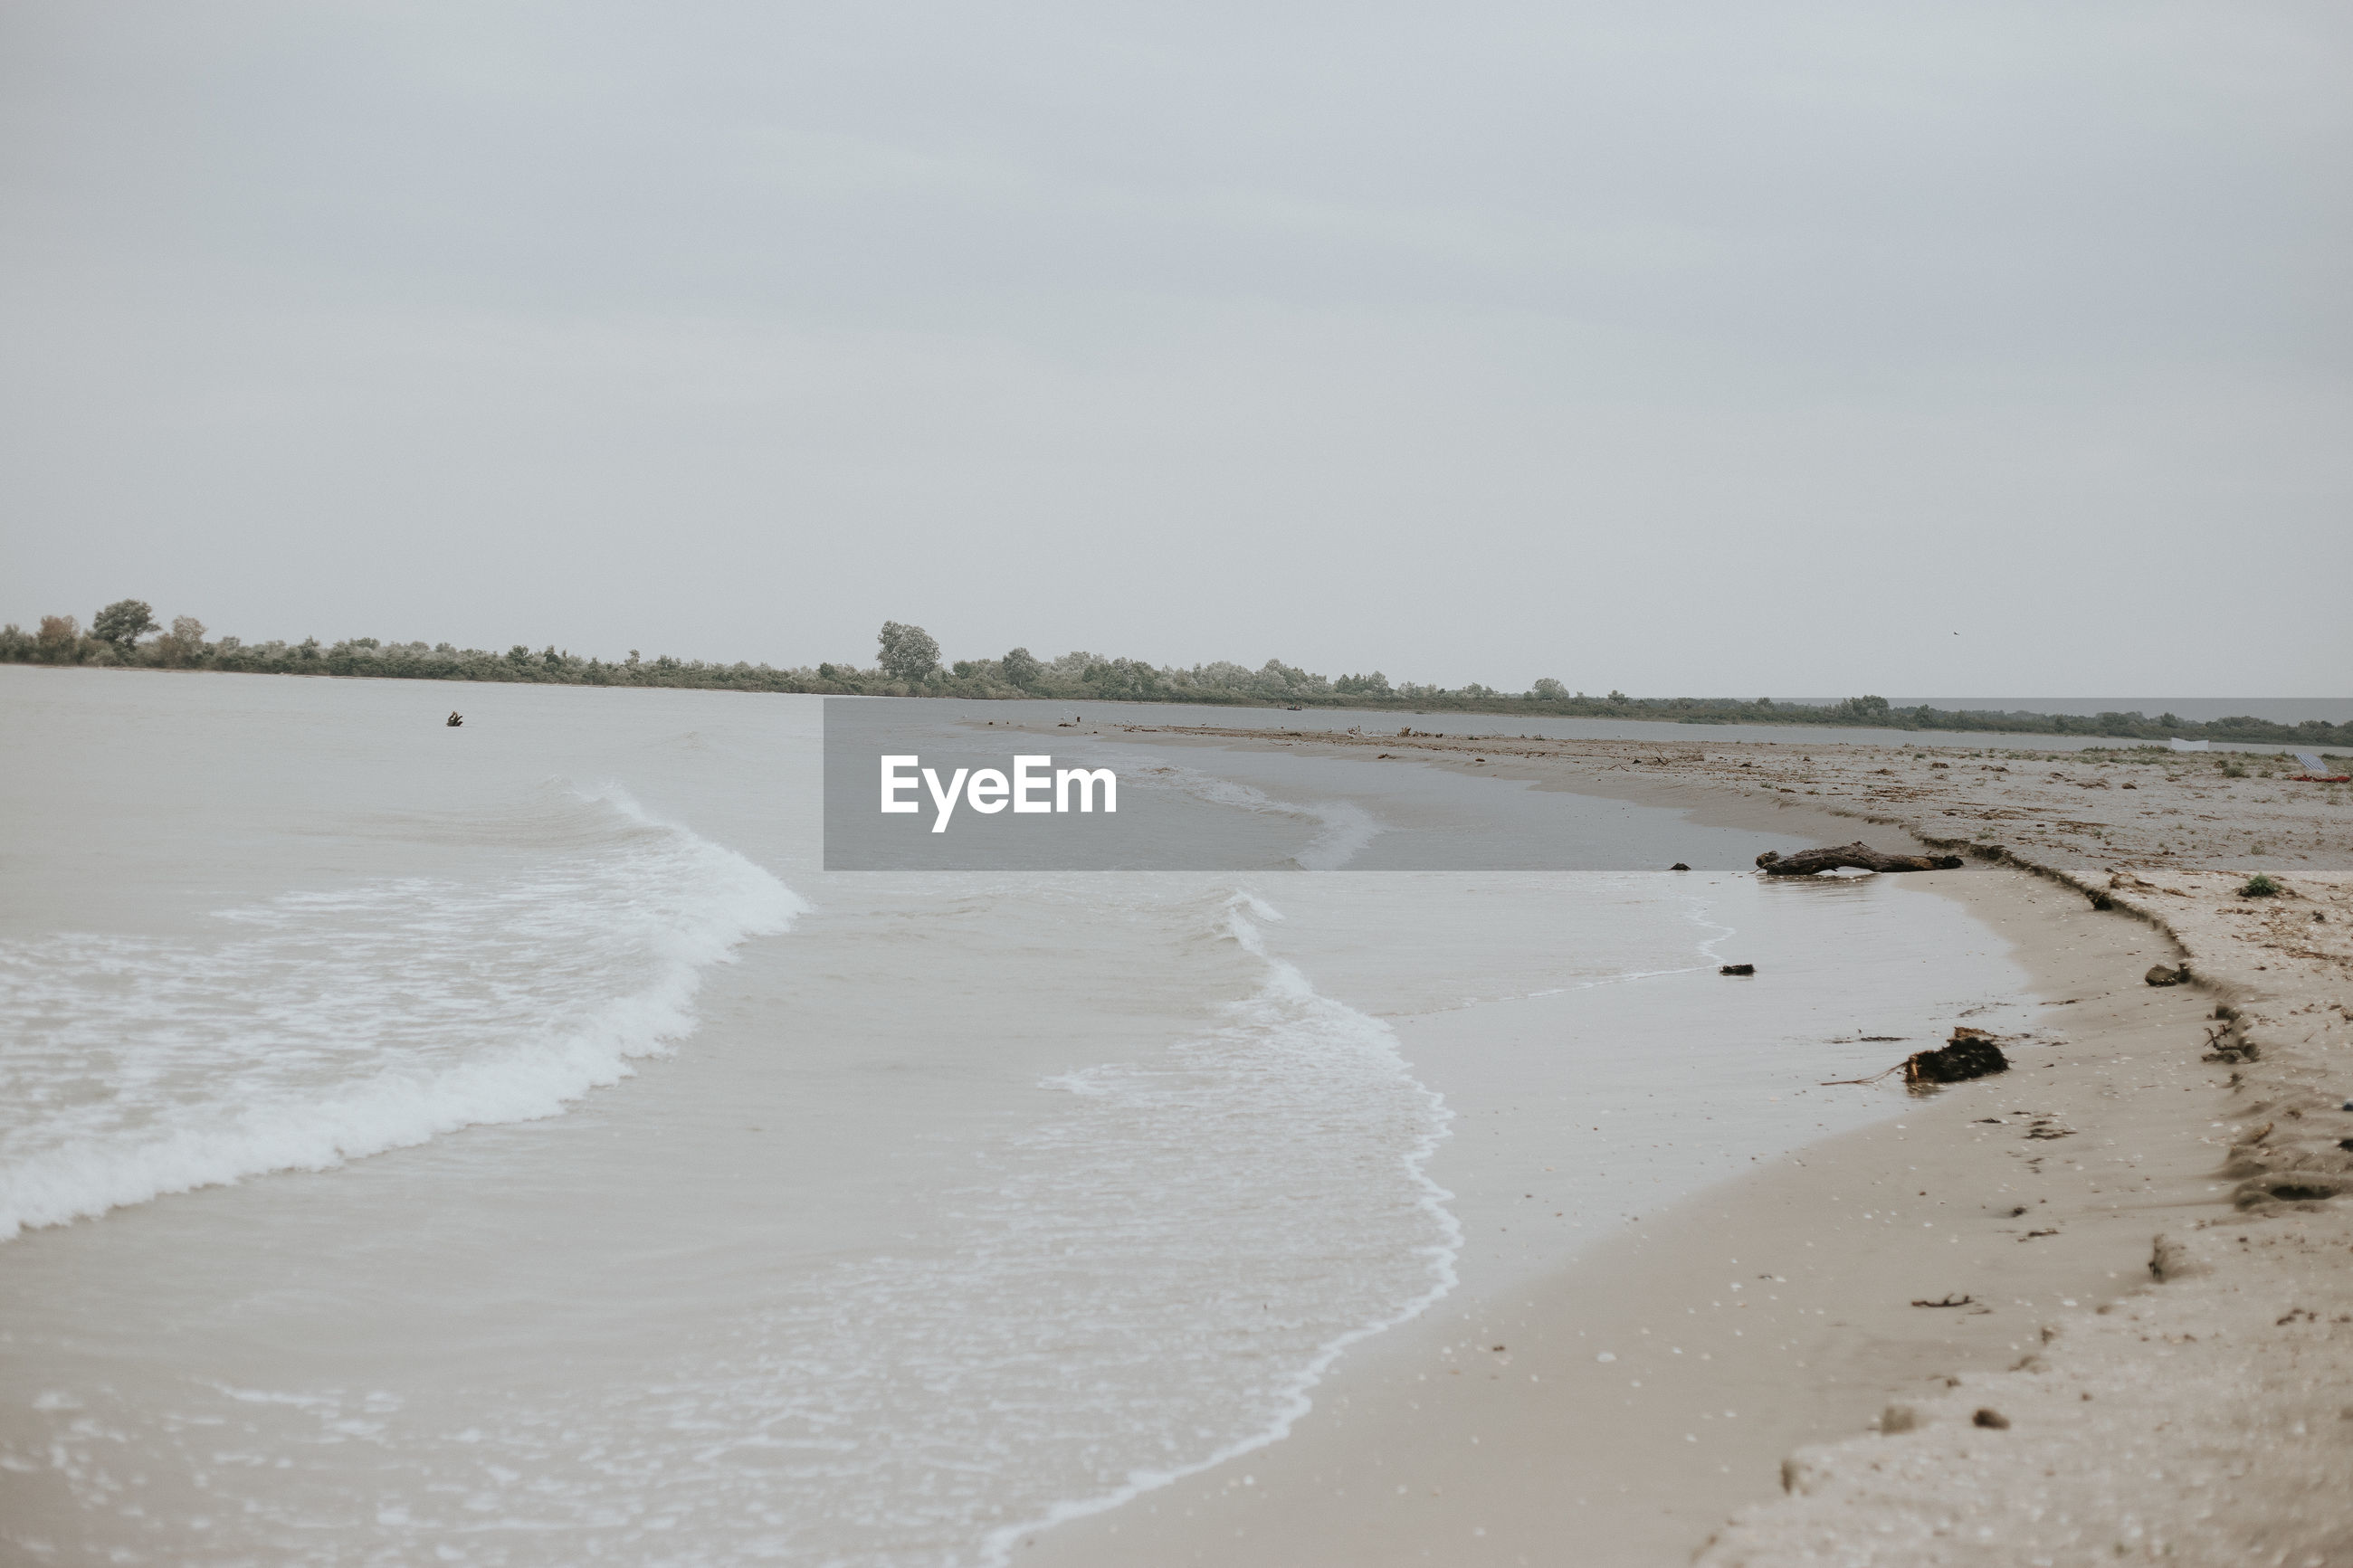 VIEW OF BEACH AGAINST SKY